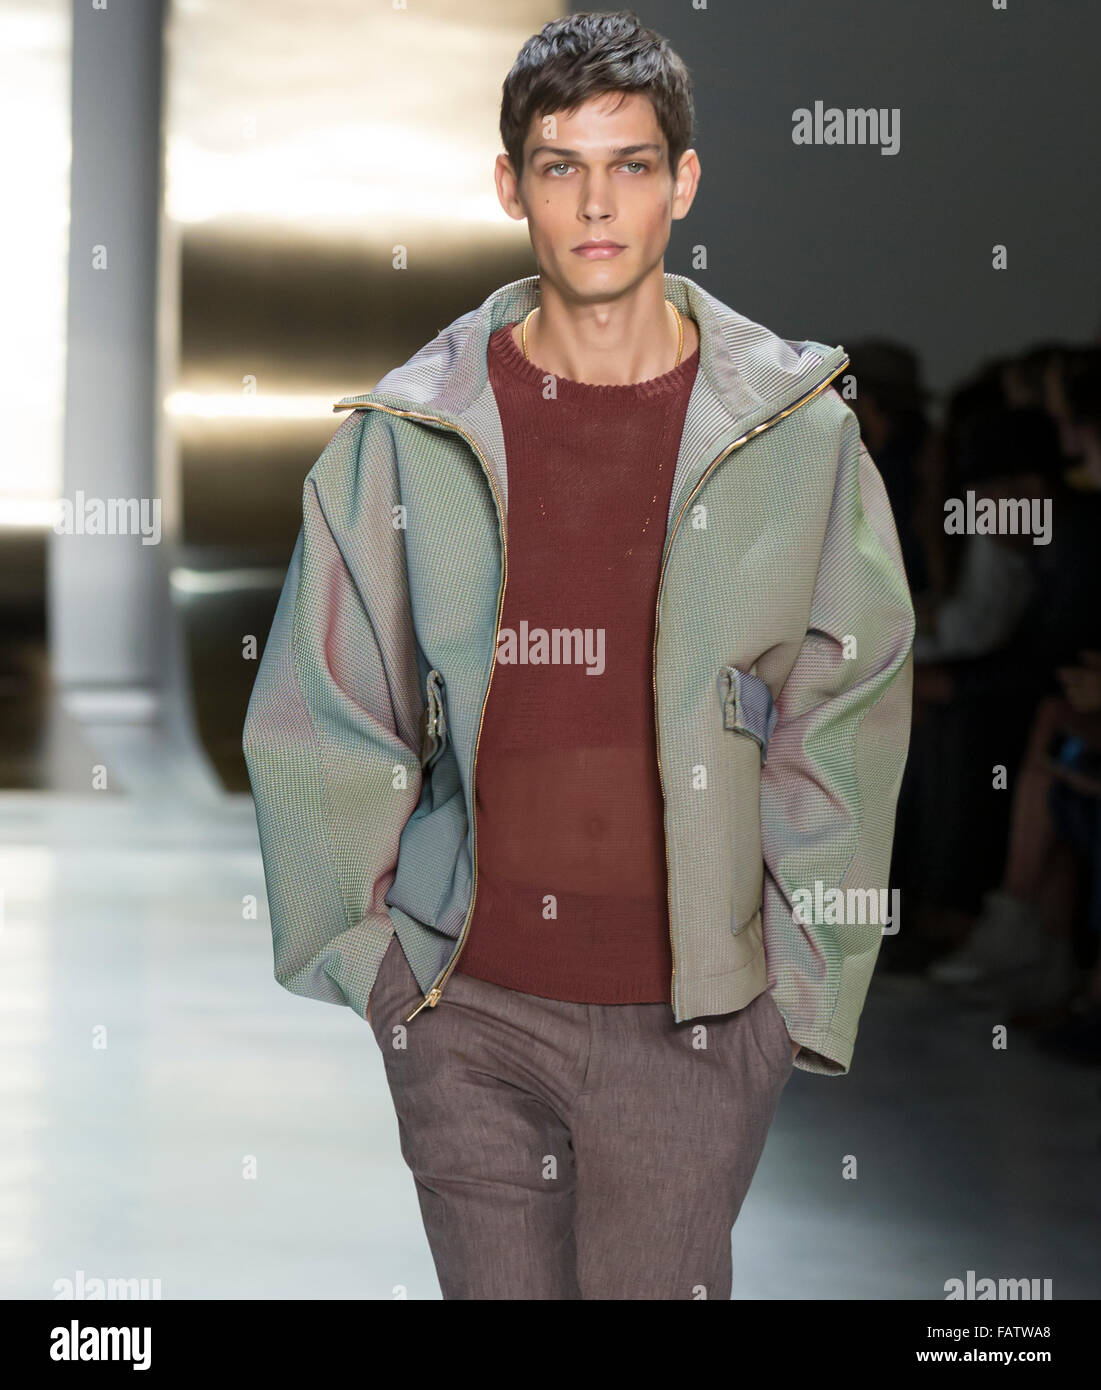 NEW YORK, NY - JULY 16, 2015: Ethan James walks the runway during the Perry Ellis show at New York Fashion Week - Stock Image